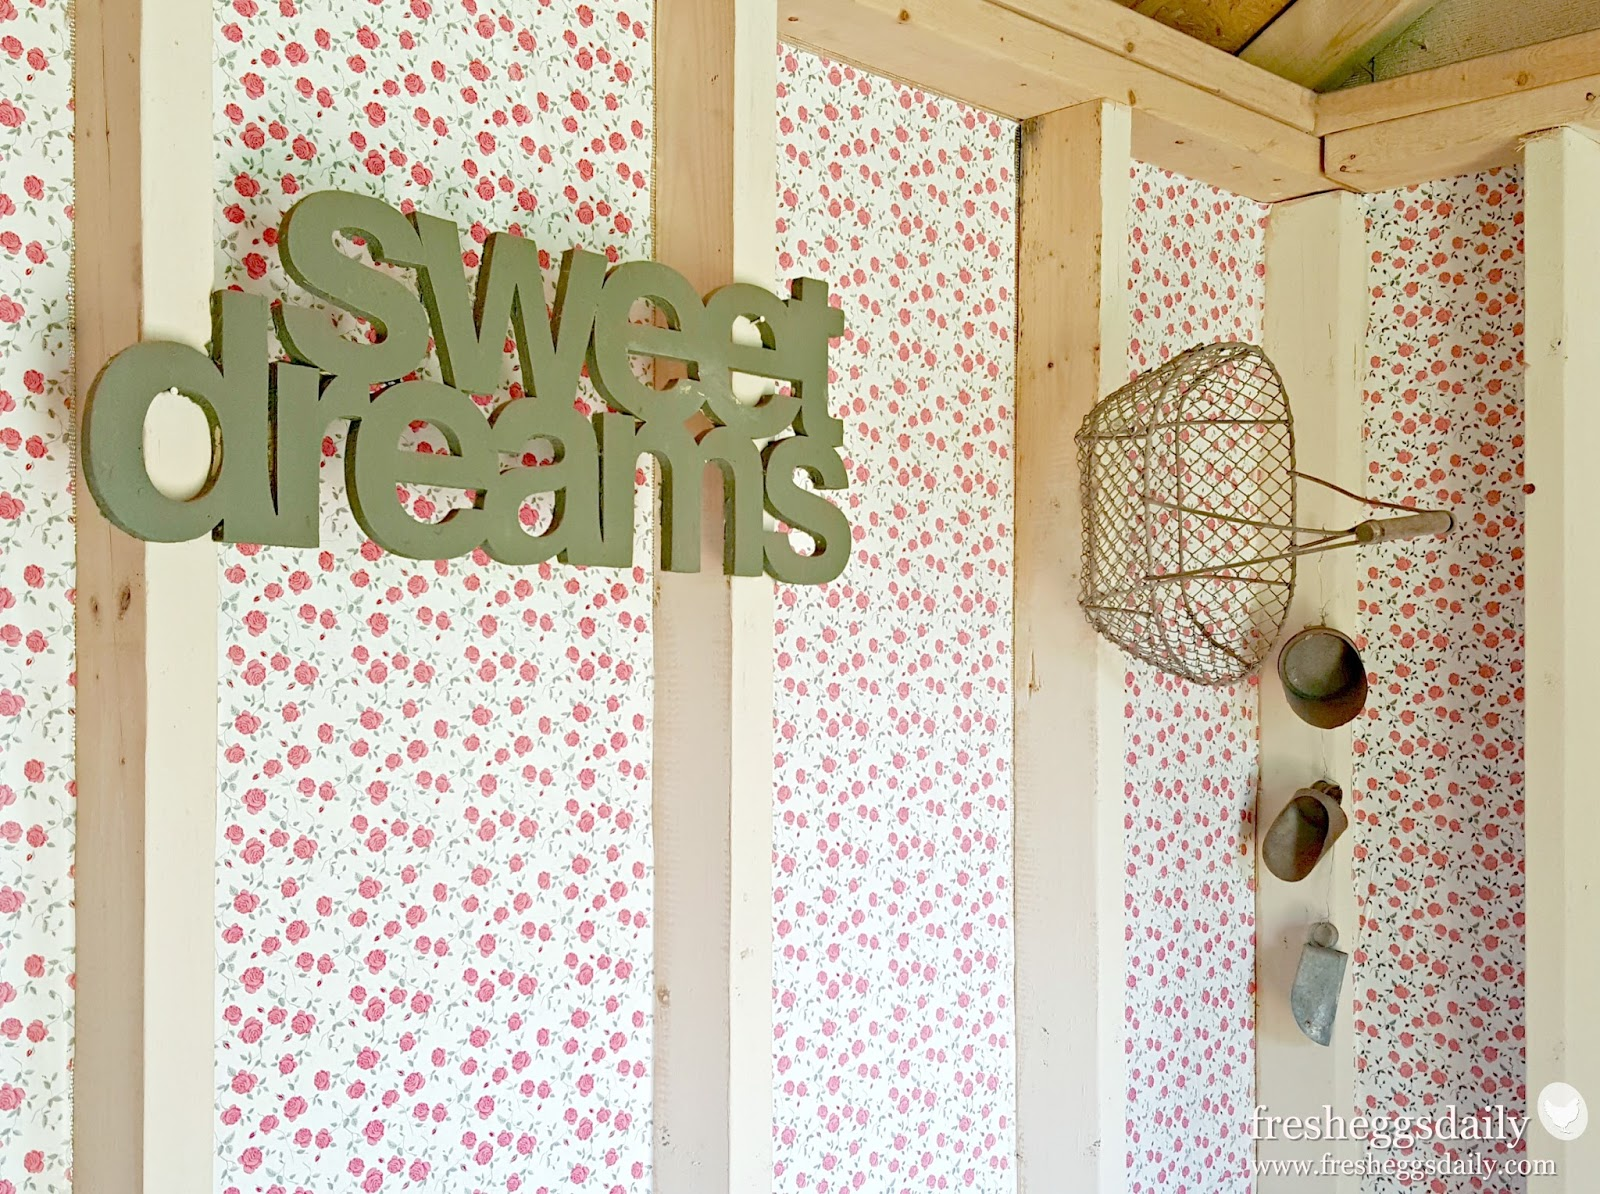 Chicken Coop Decor for the Posh Flock | Fresh Eggs Daily®